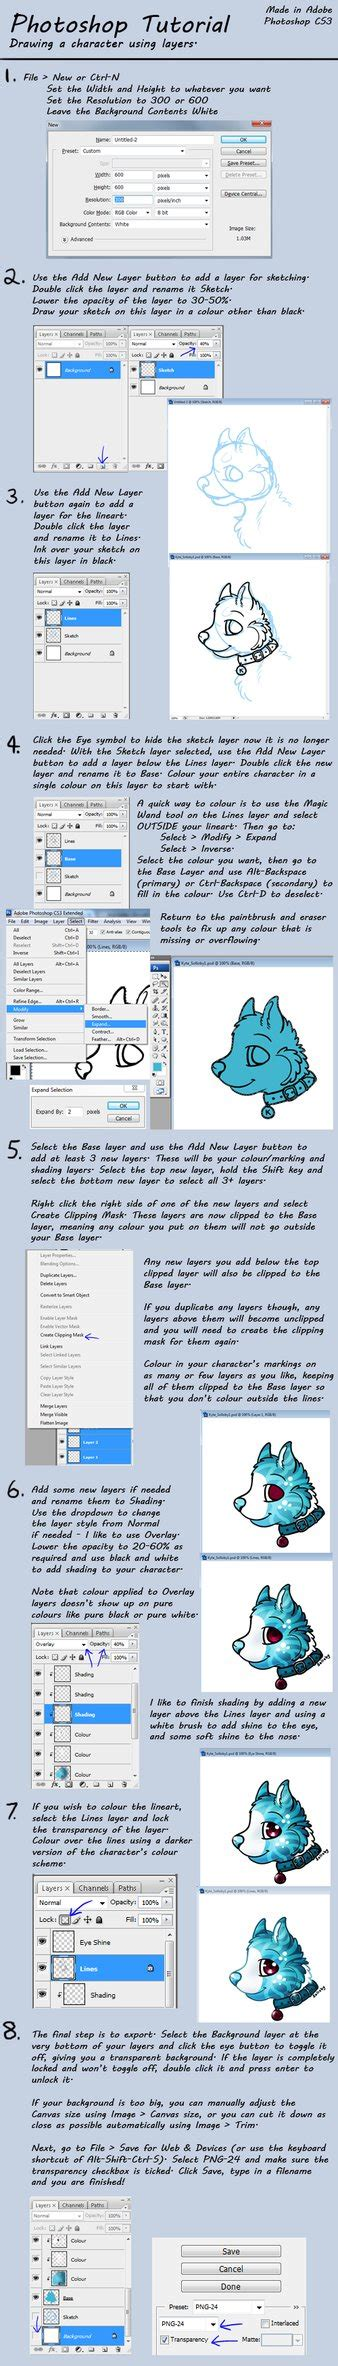 tutorial photoshop layers photoshop tutorial draw a character using layers by